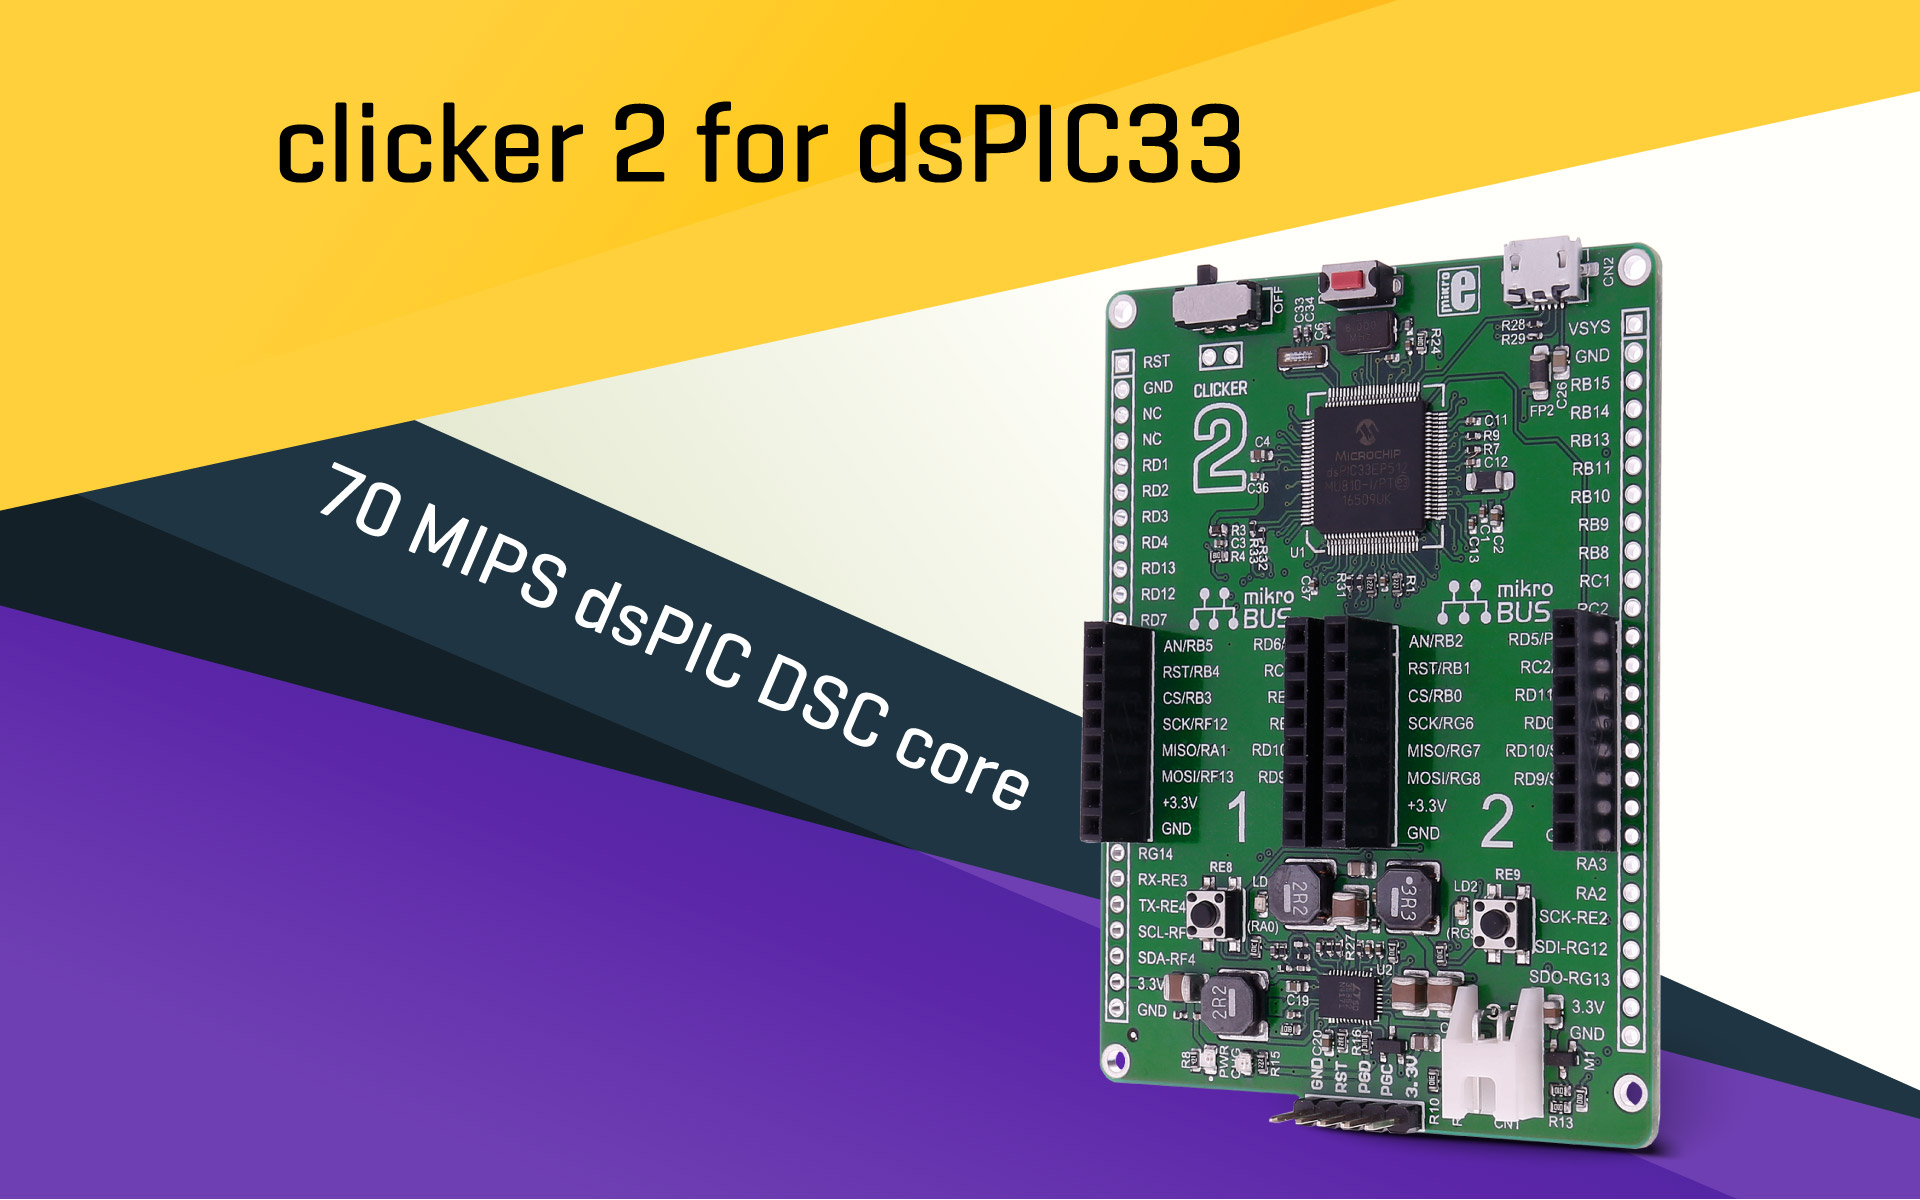 clicker 2 for dsPIC33 – a pocket size development board you need